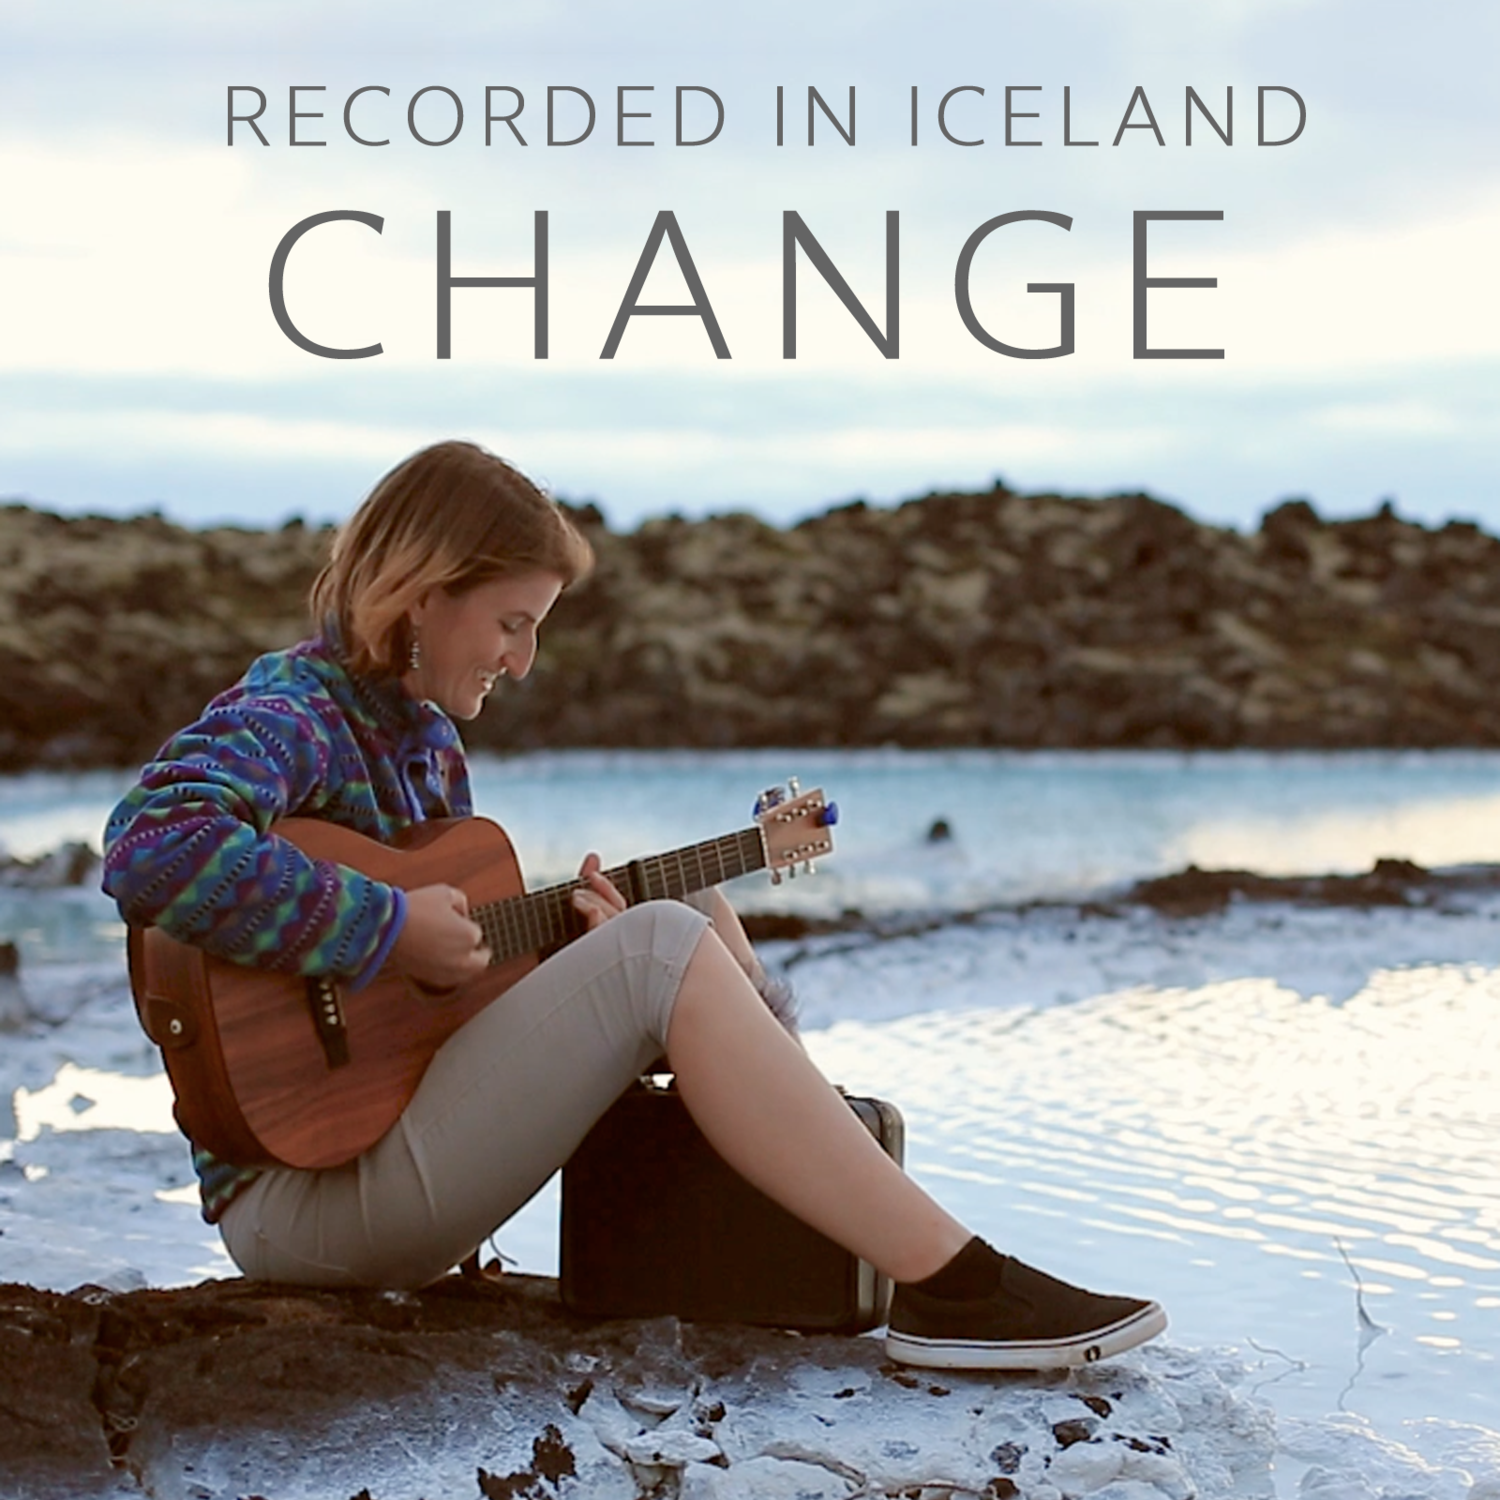 Change (Recorded in Iceland) - Digital Single